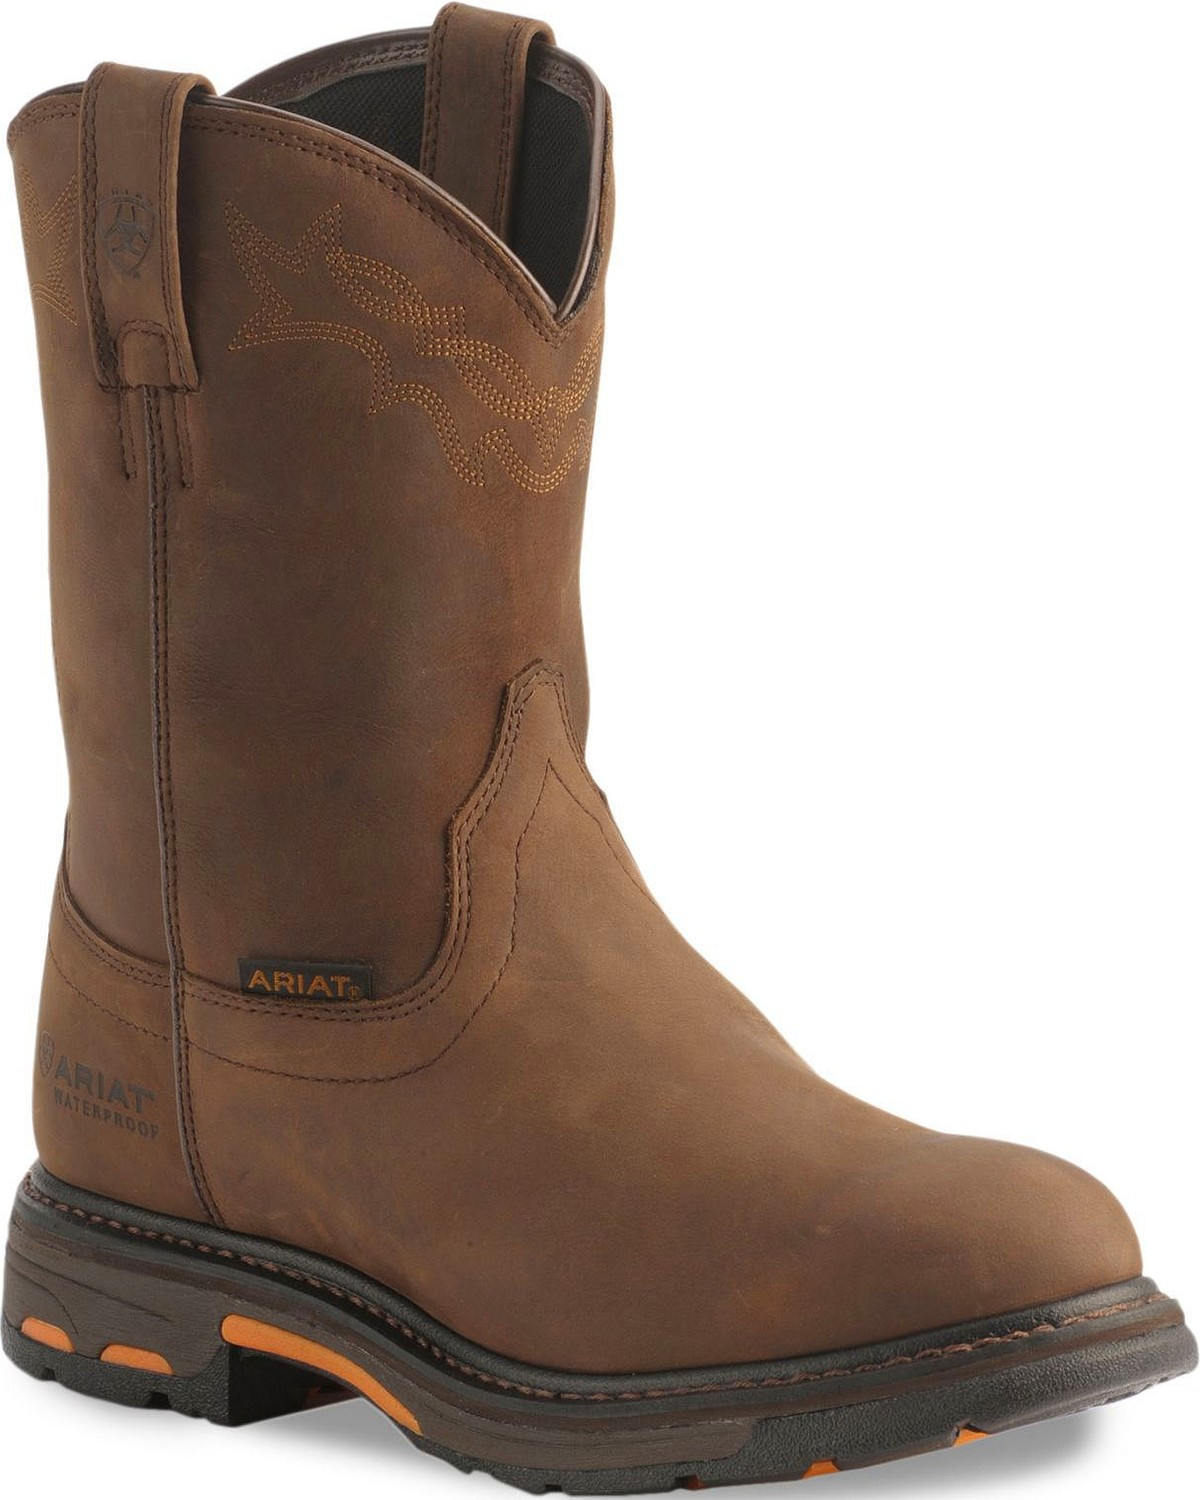 ariat work boots stores near me